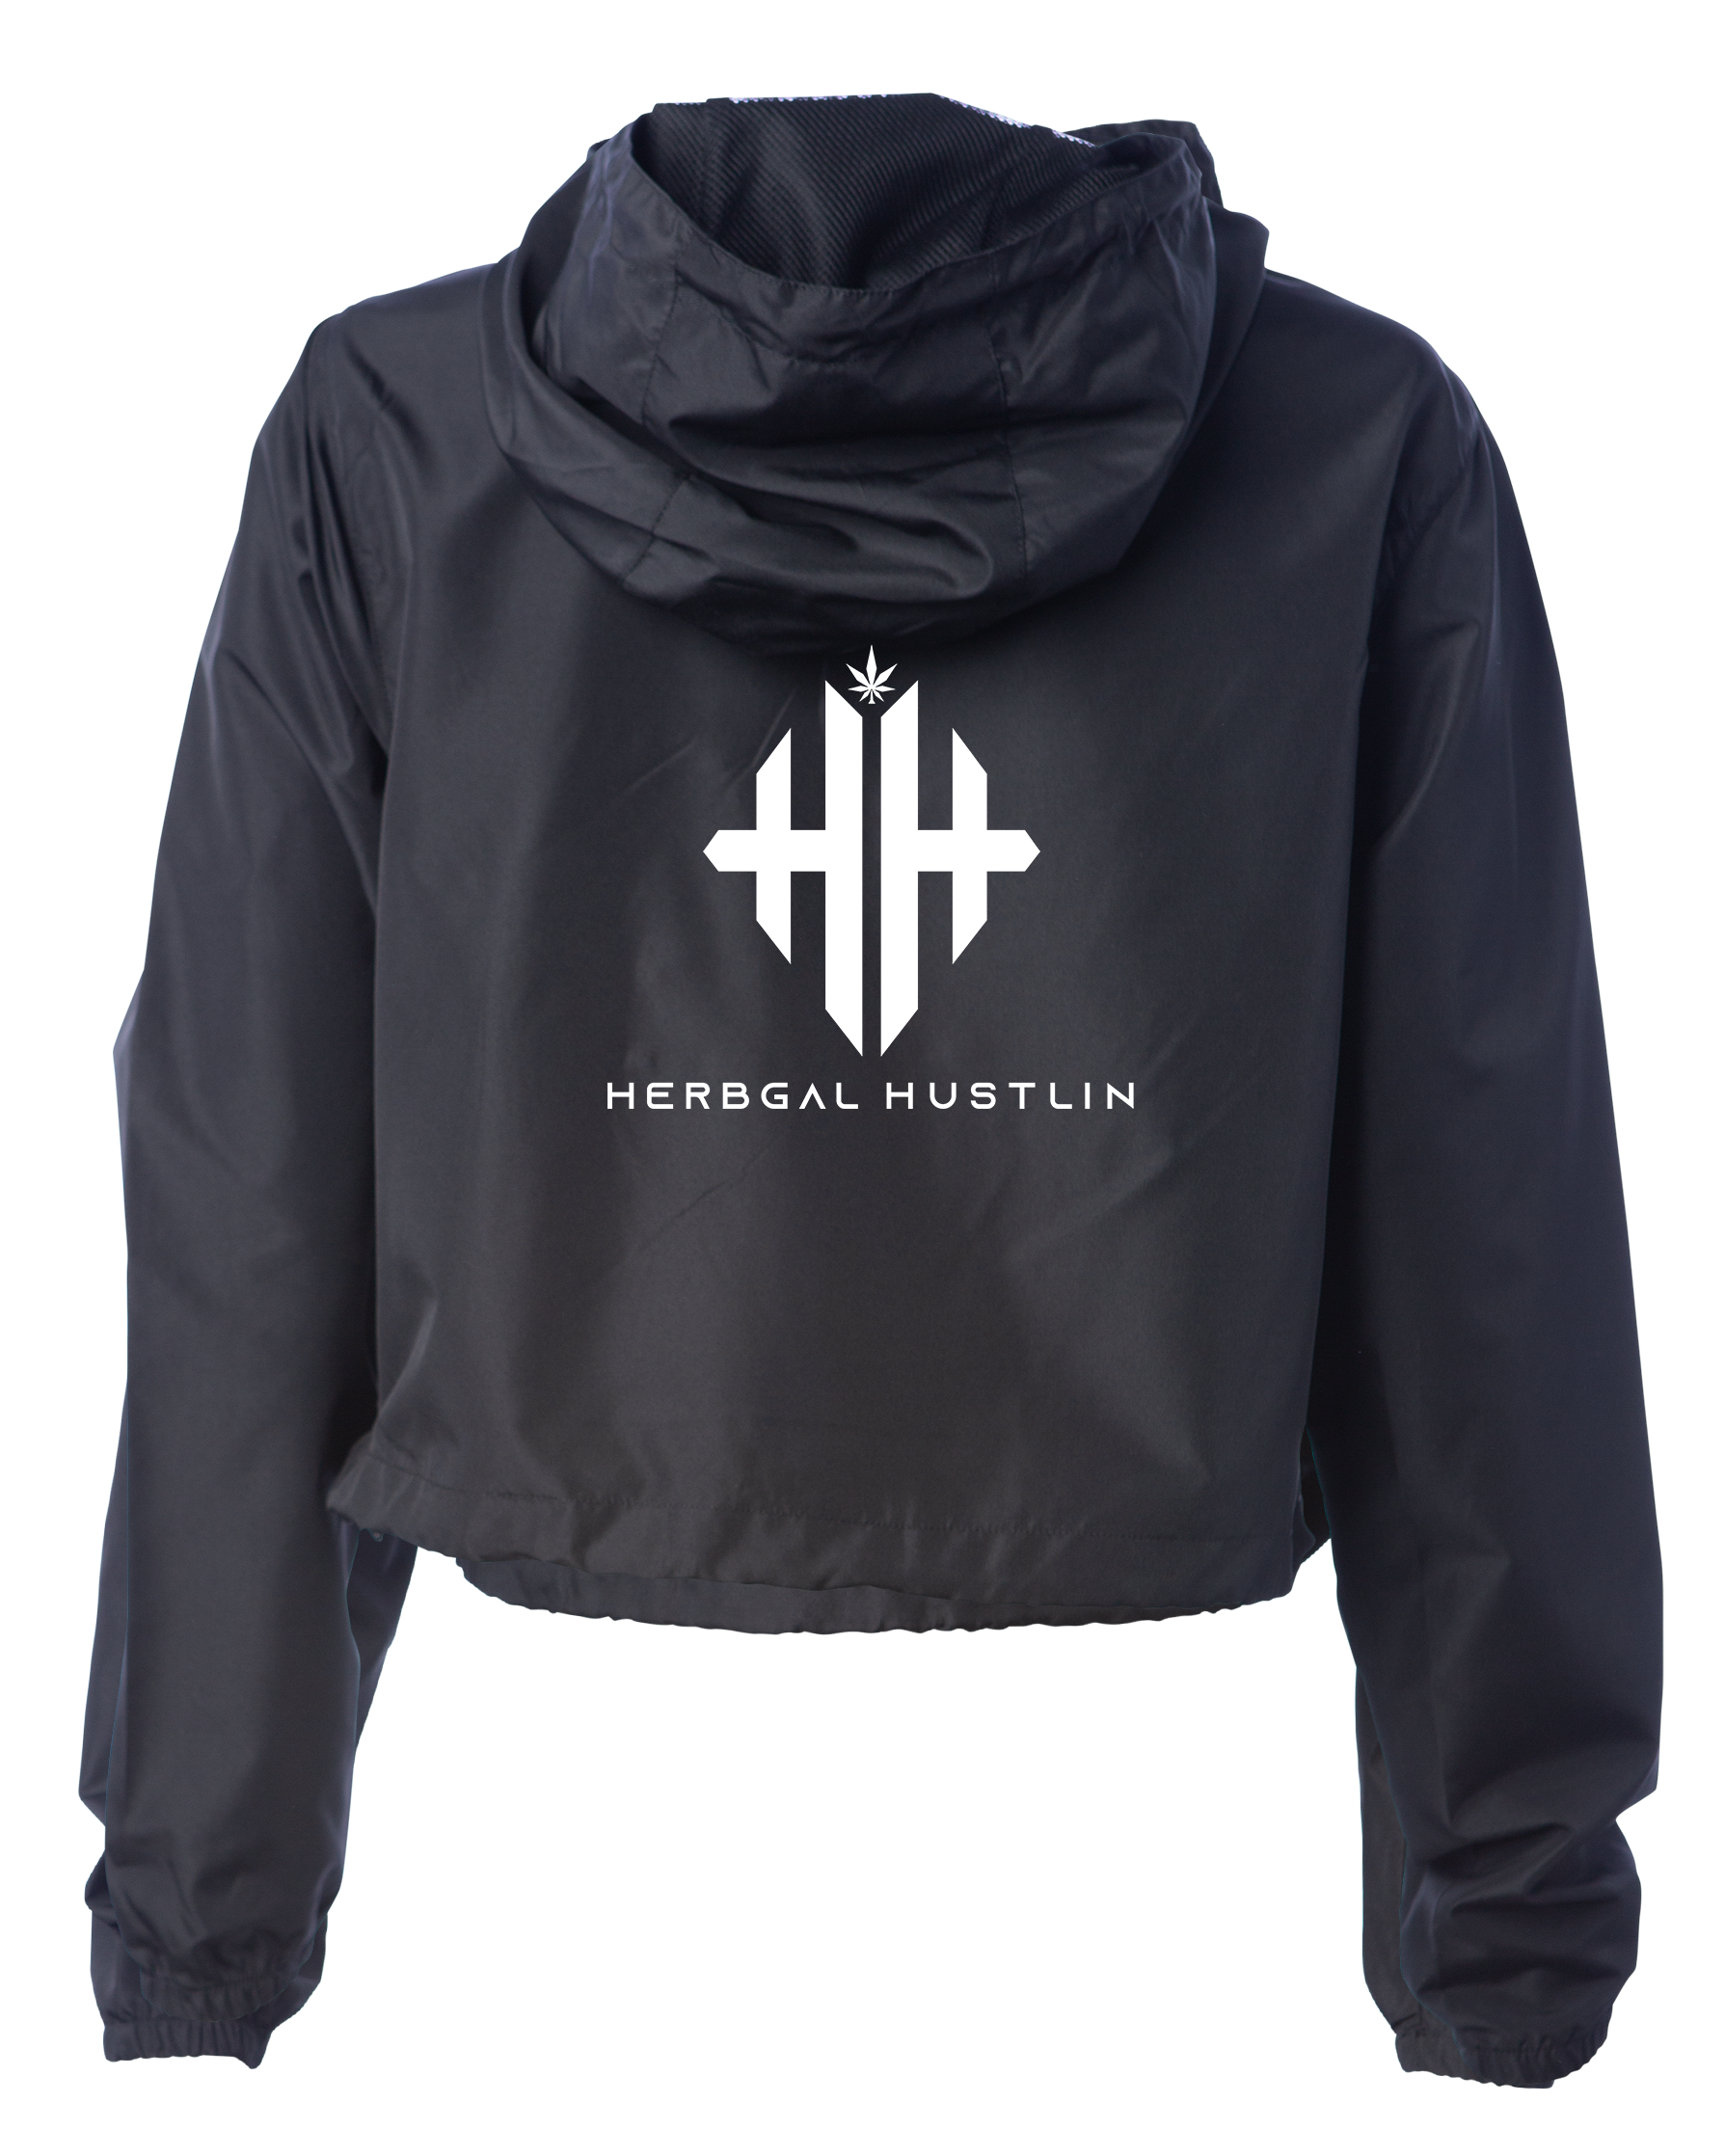 Herbgal Hustlin Lightweight Waterproof  Cropped Windbreaker - Black/White